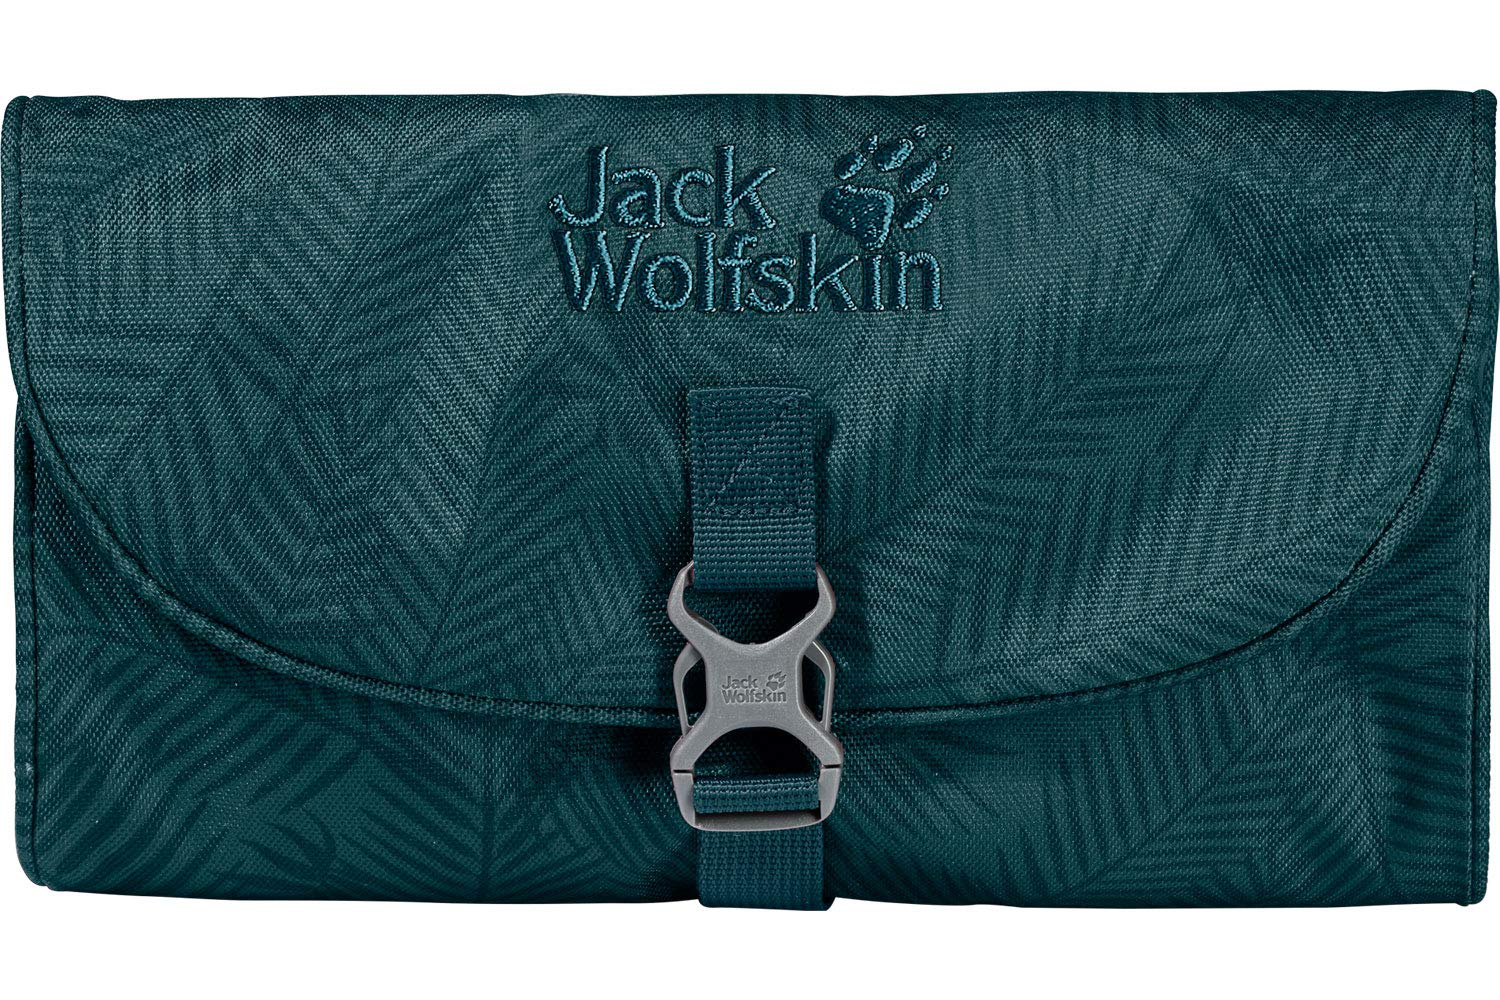 Jack Wolfskin Waschsalon Washbag Leaf Teal Green 2019